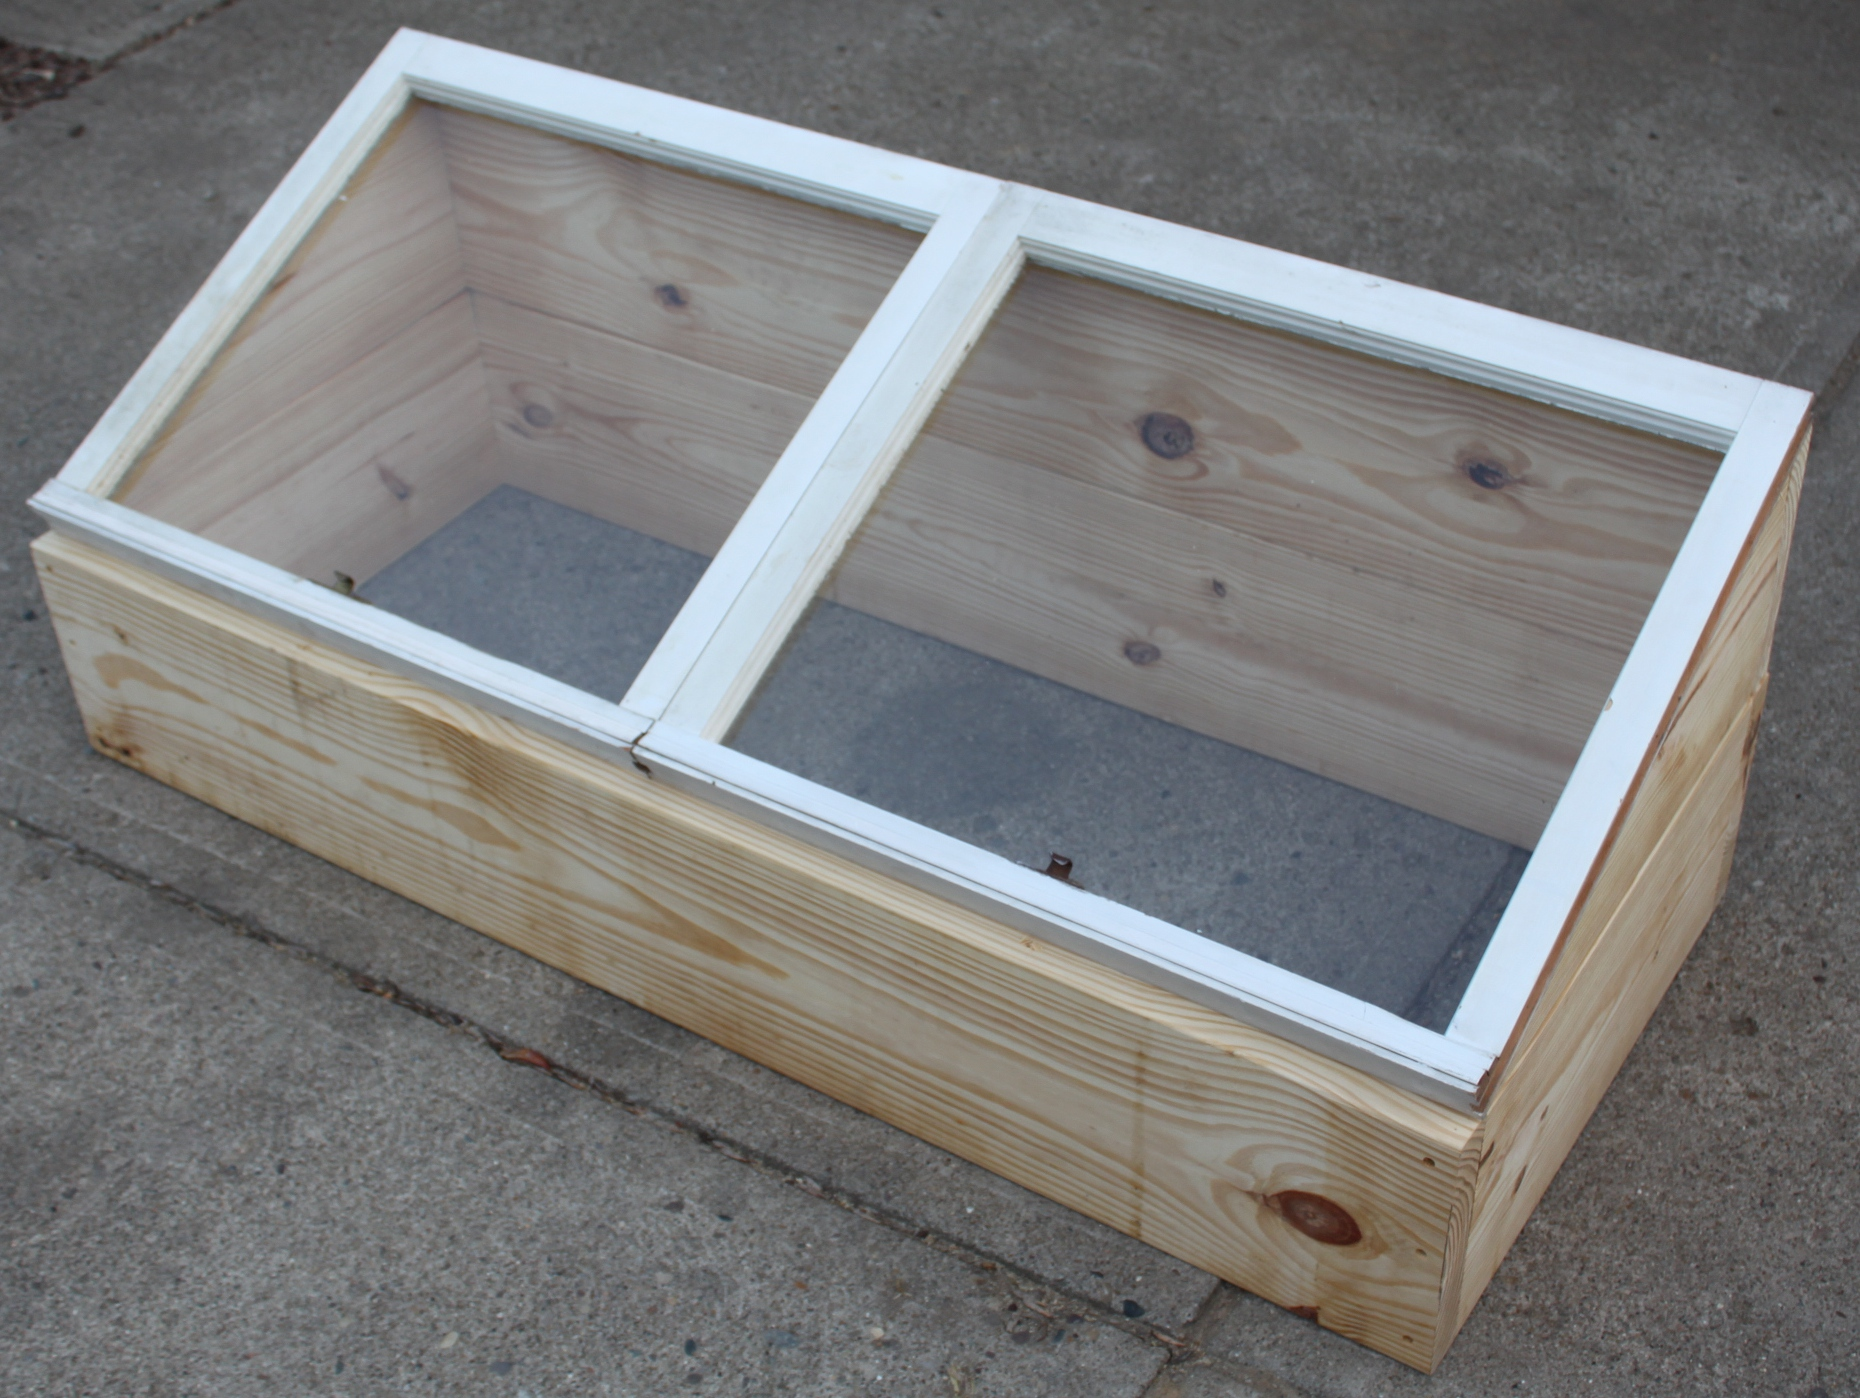 Build And Use A Cold Frame To Grow Veggies Year Round – On The Cheap ...